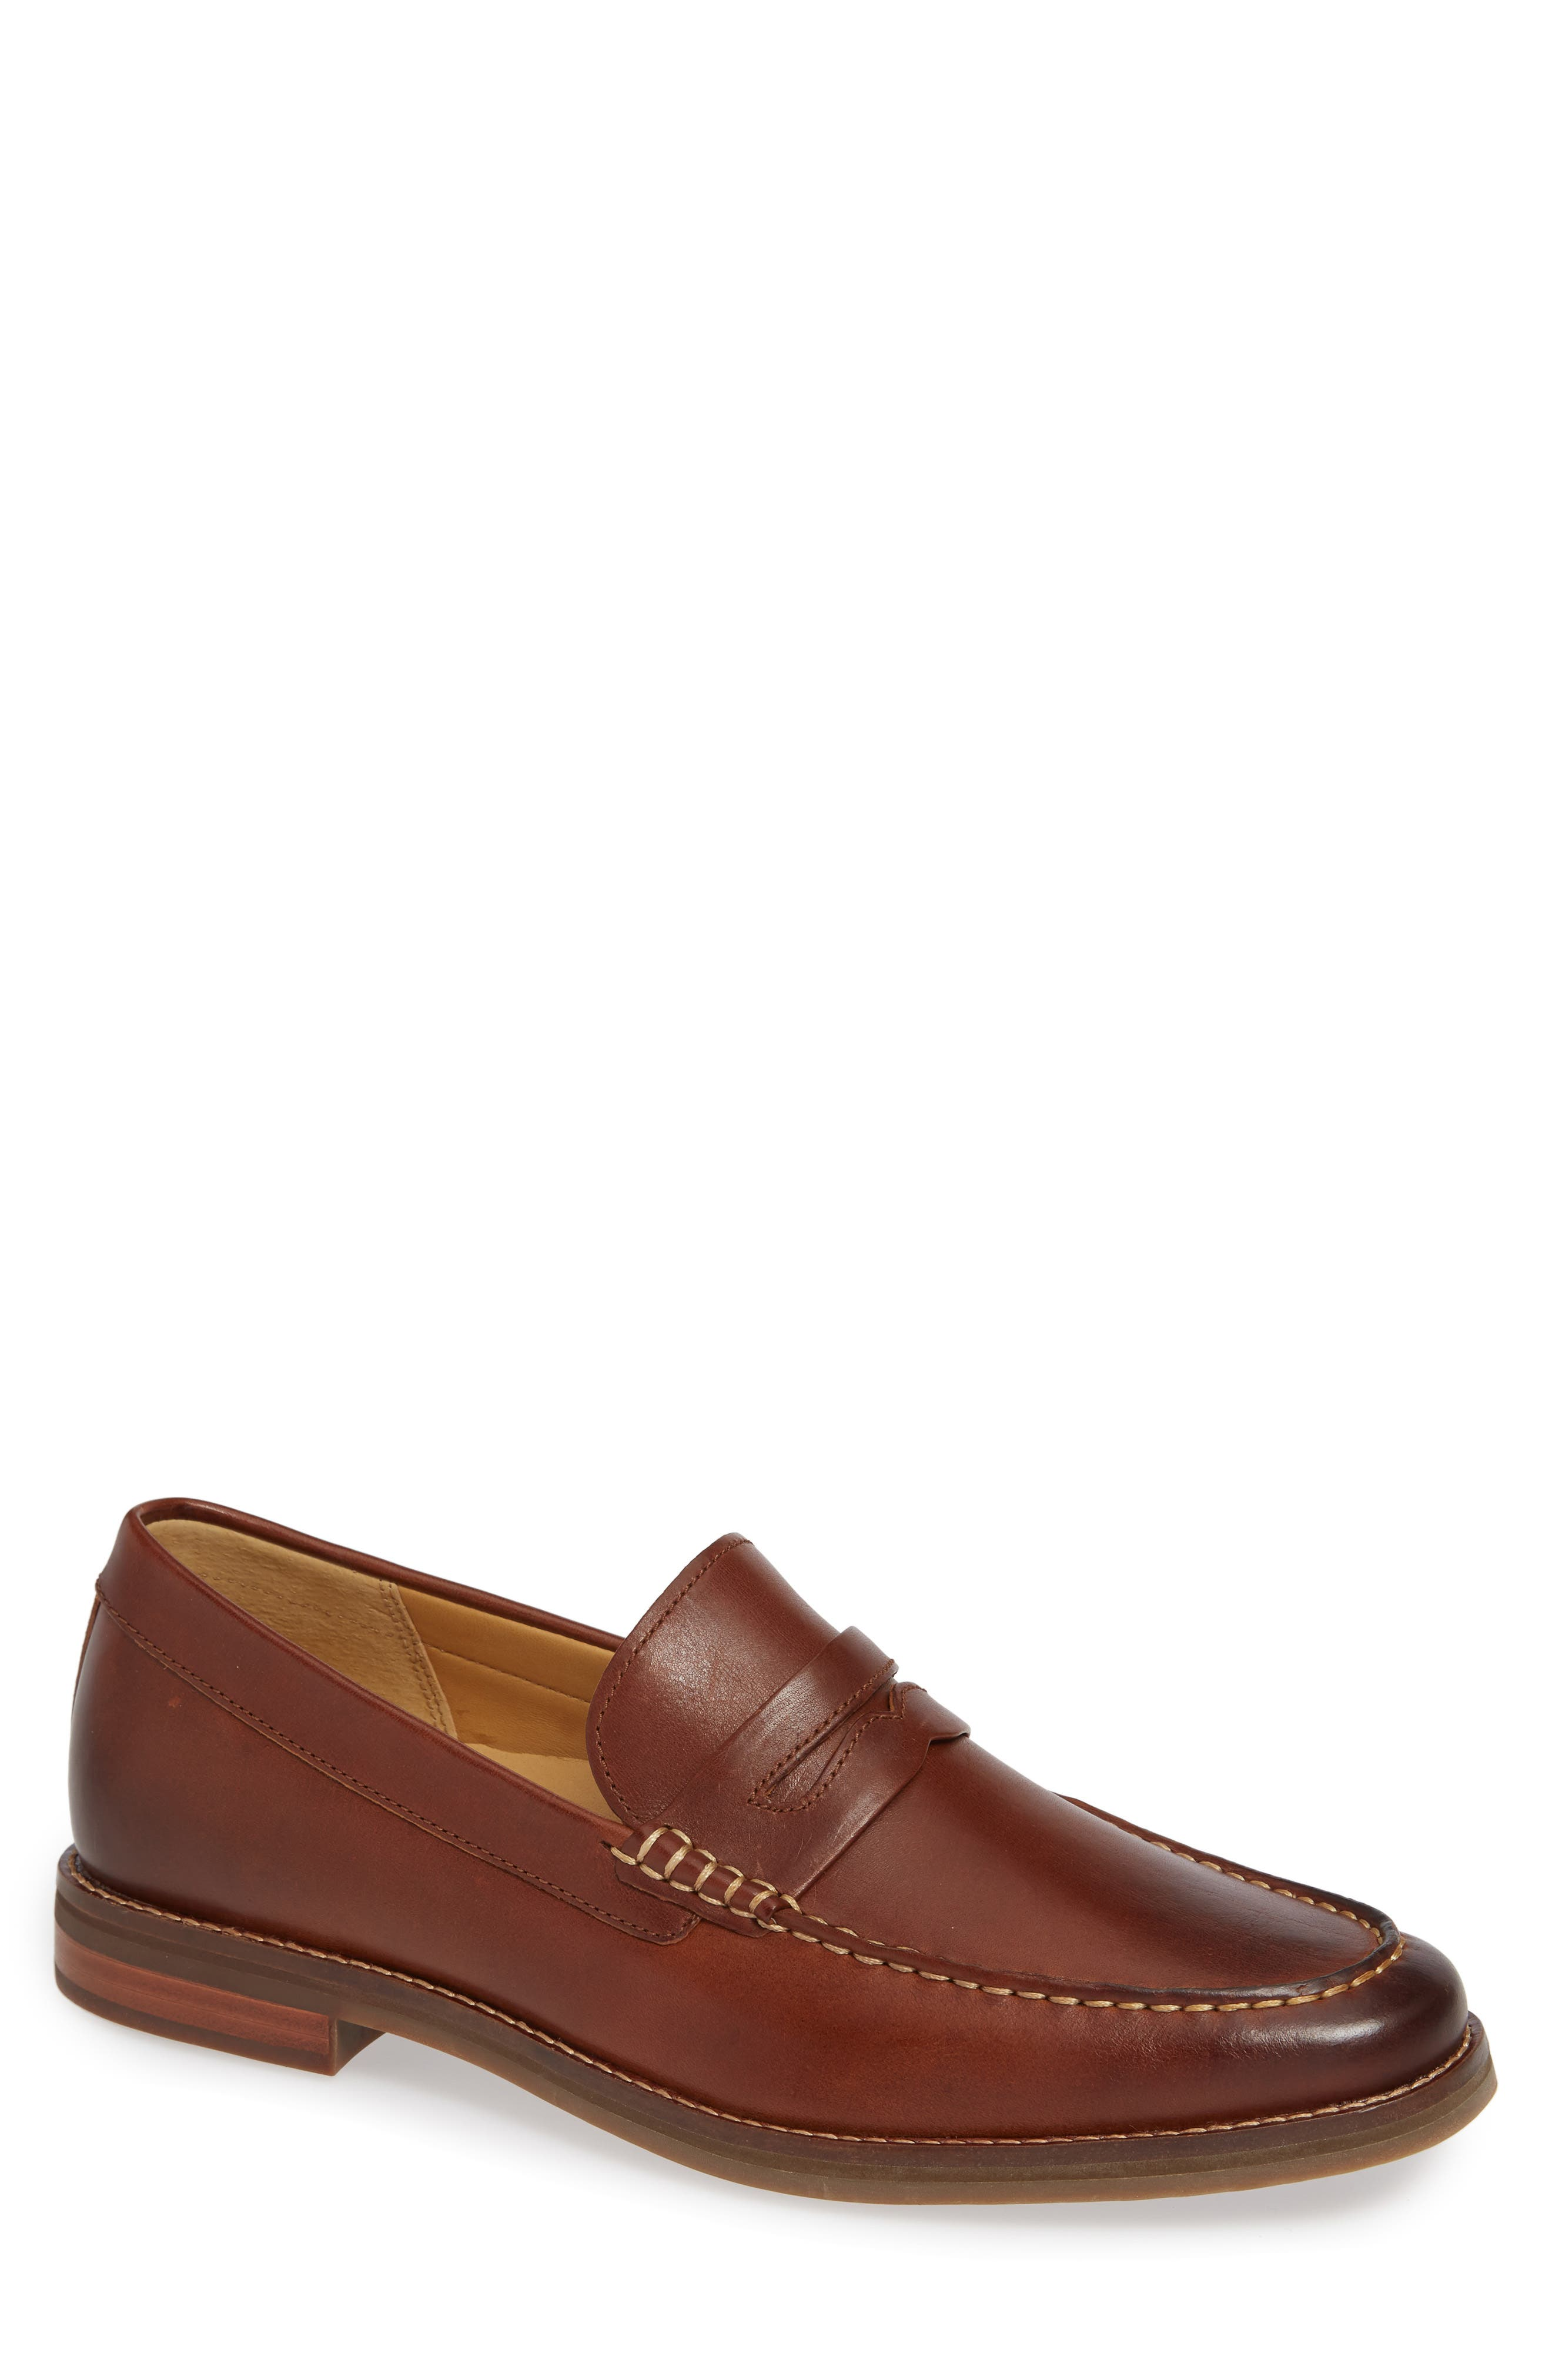 SPERRY Gold Cup Exeter Penny Loafer, Main, color, TAN